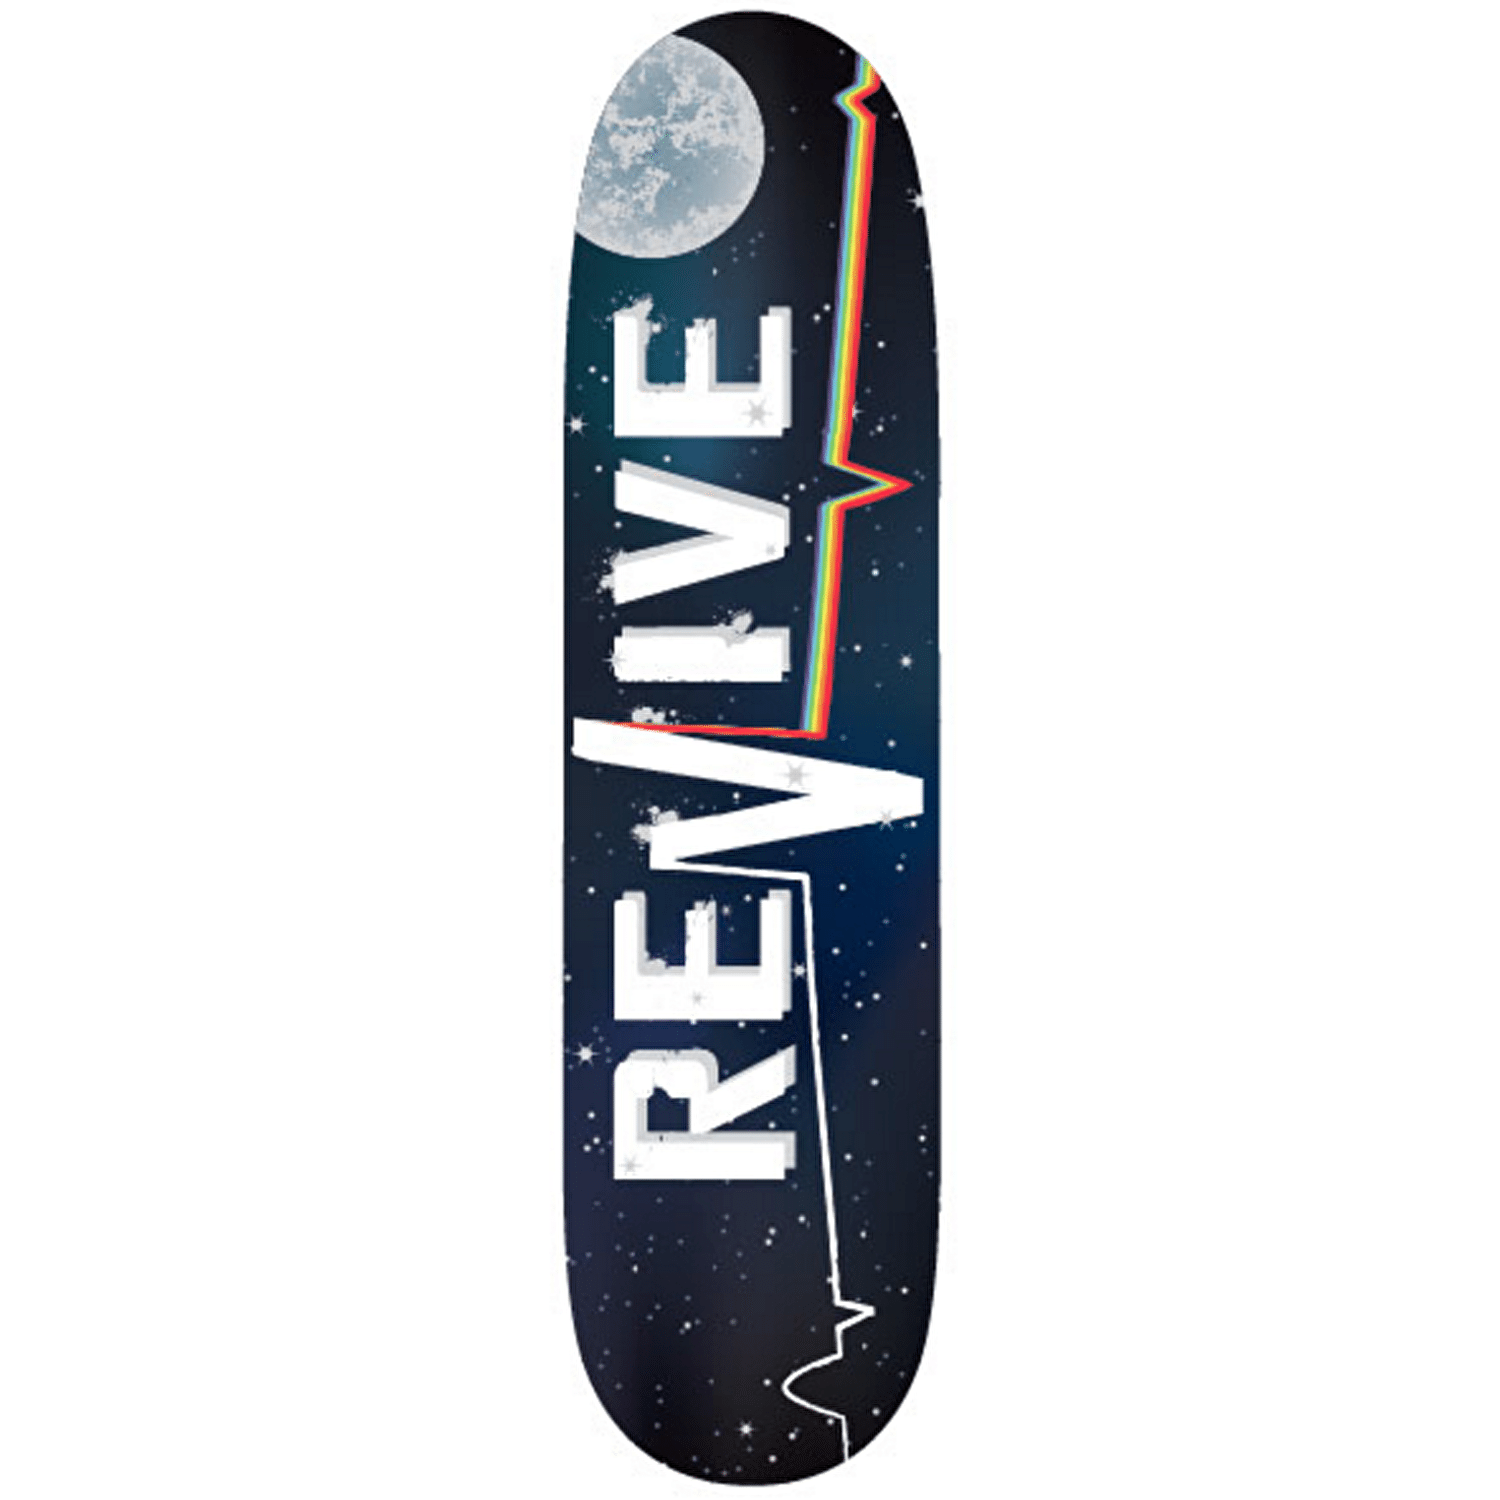 Skateboard Skateboard Revive Skateboard Deck Lifeline Space Ebay